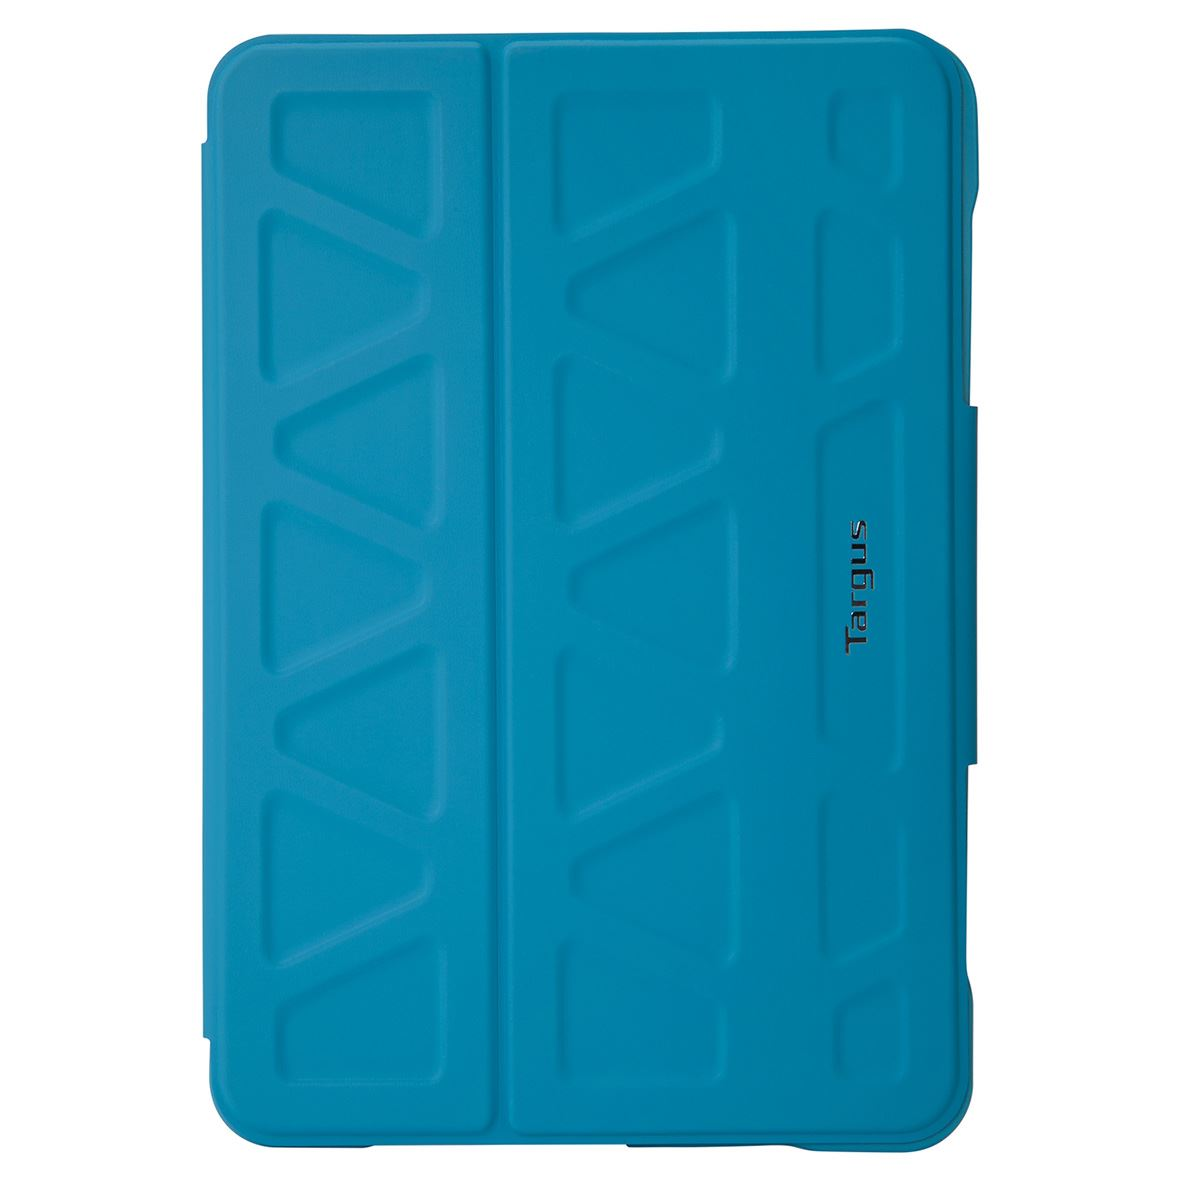 3d protection case for ipad mini 4321 blue altavistaventures Image collections